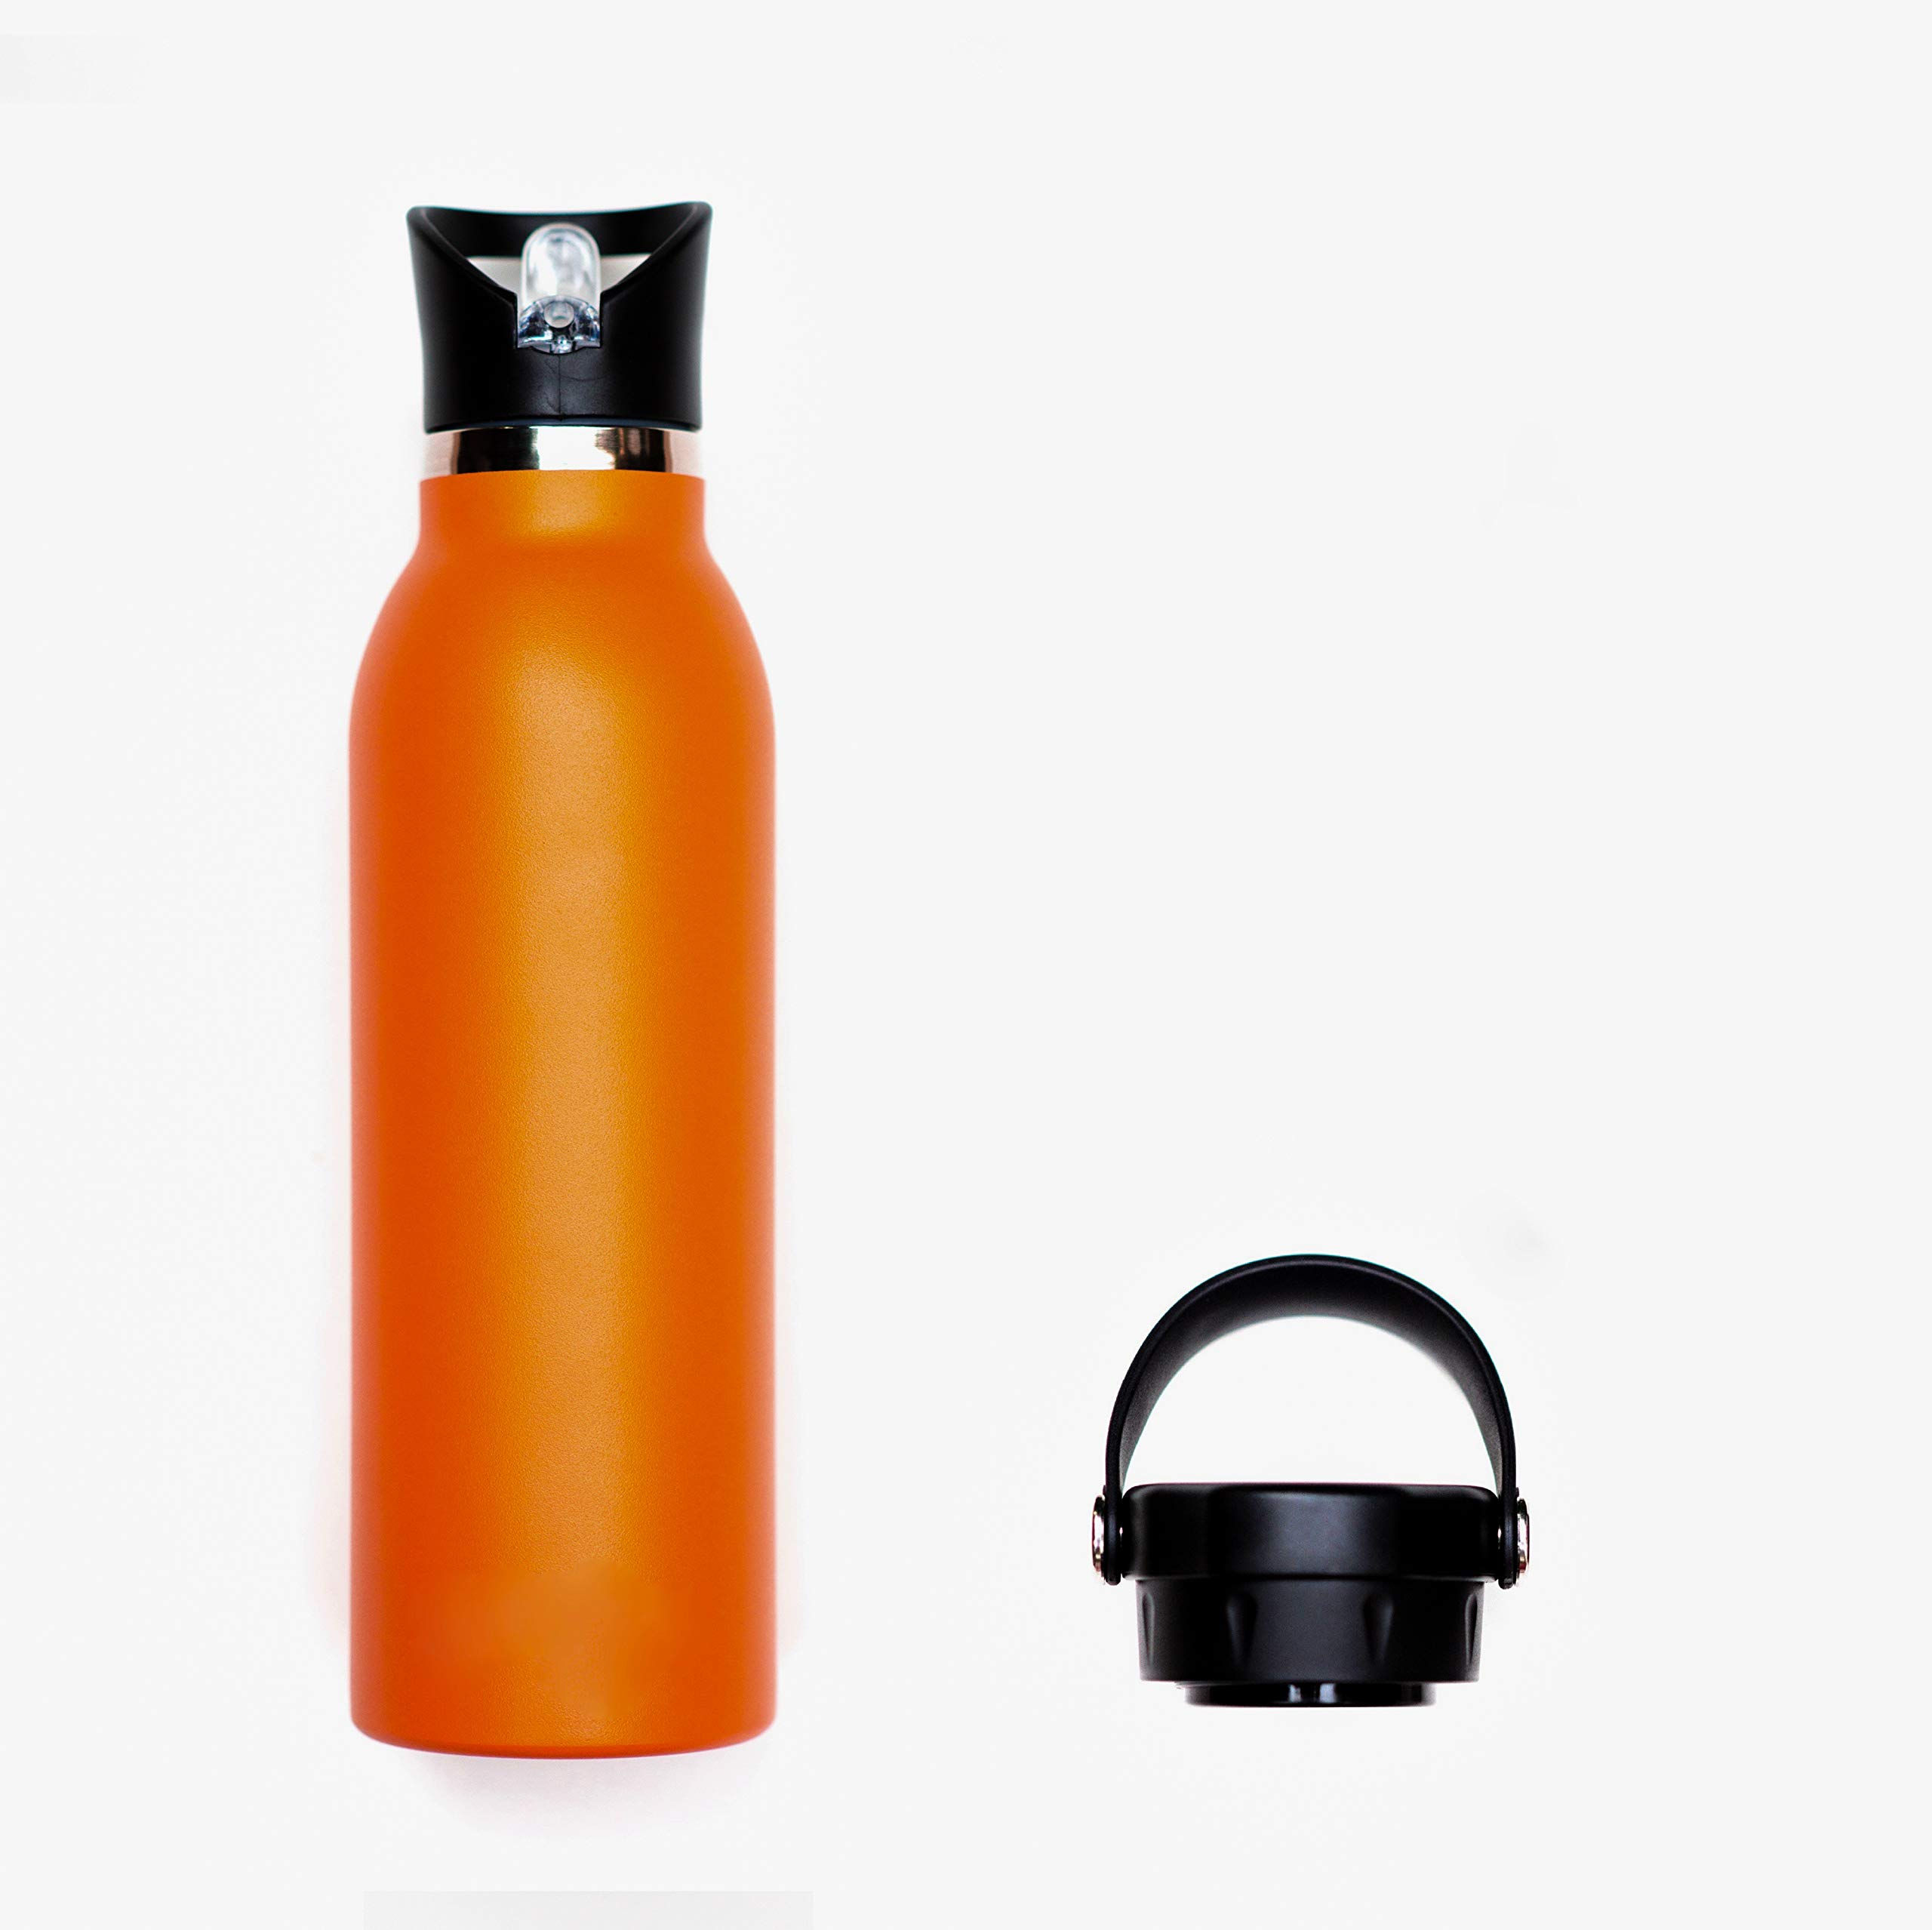 Bend It Stainless Steel Orange Water Bottle Flask 21 Oz Double Wall Vacuum Insulated Leak Proof Standard Mouth With 2 Bpa Free Sport Caps Flip Top Hydro Straw Lid Flex Cap